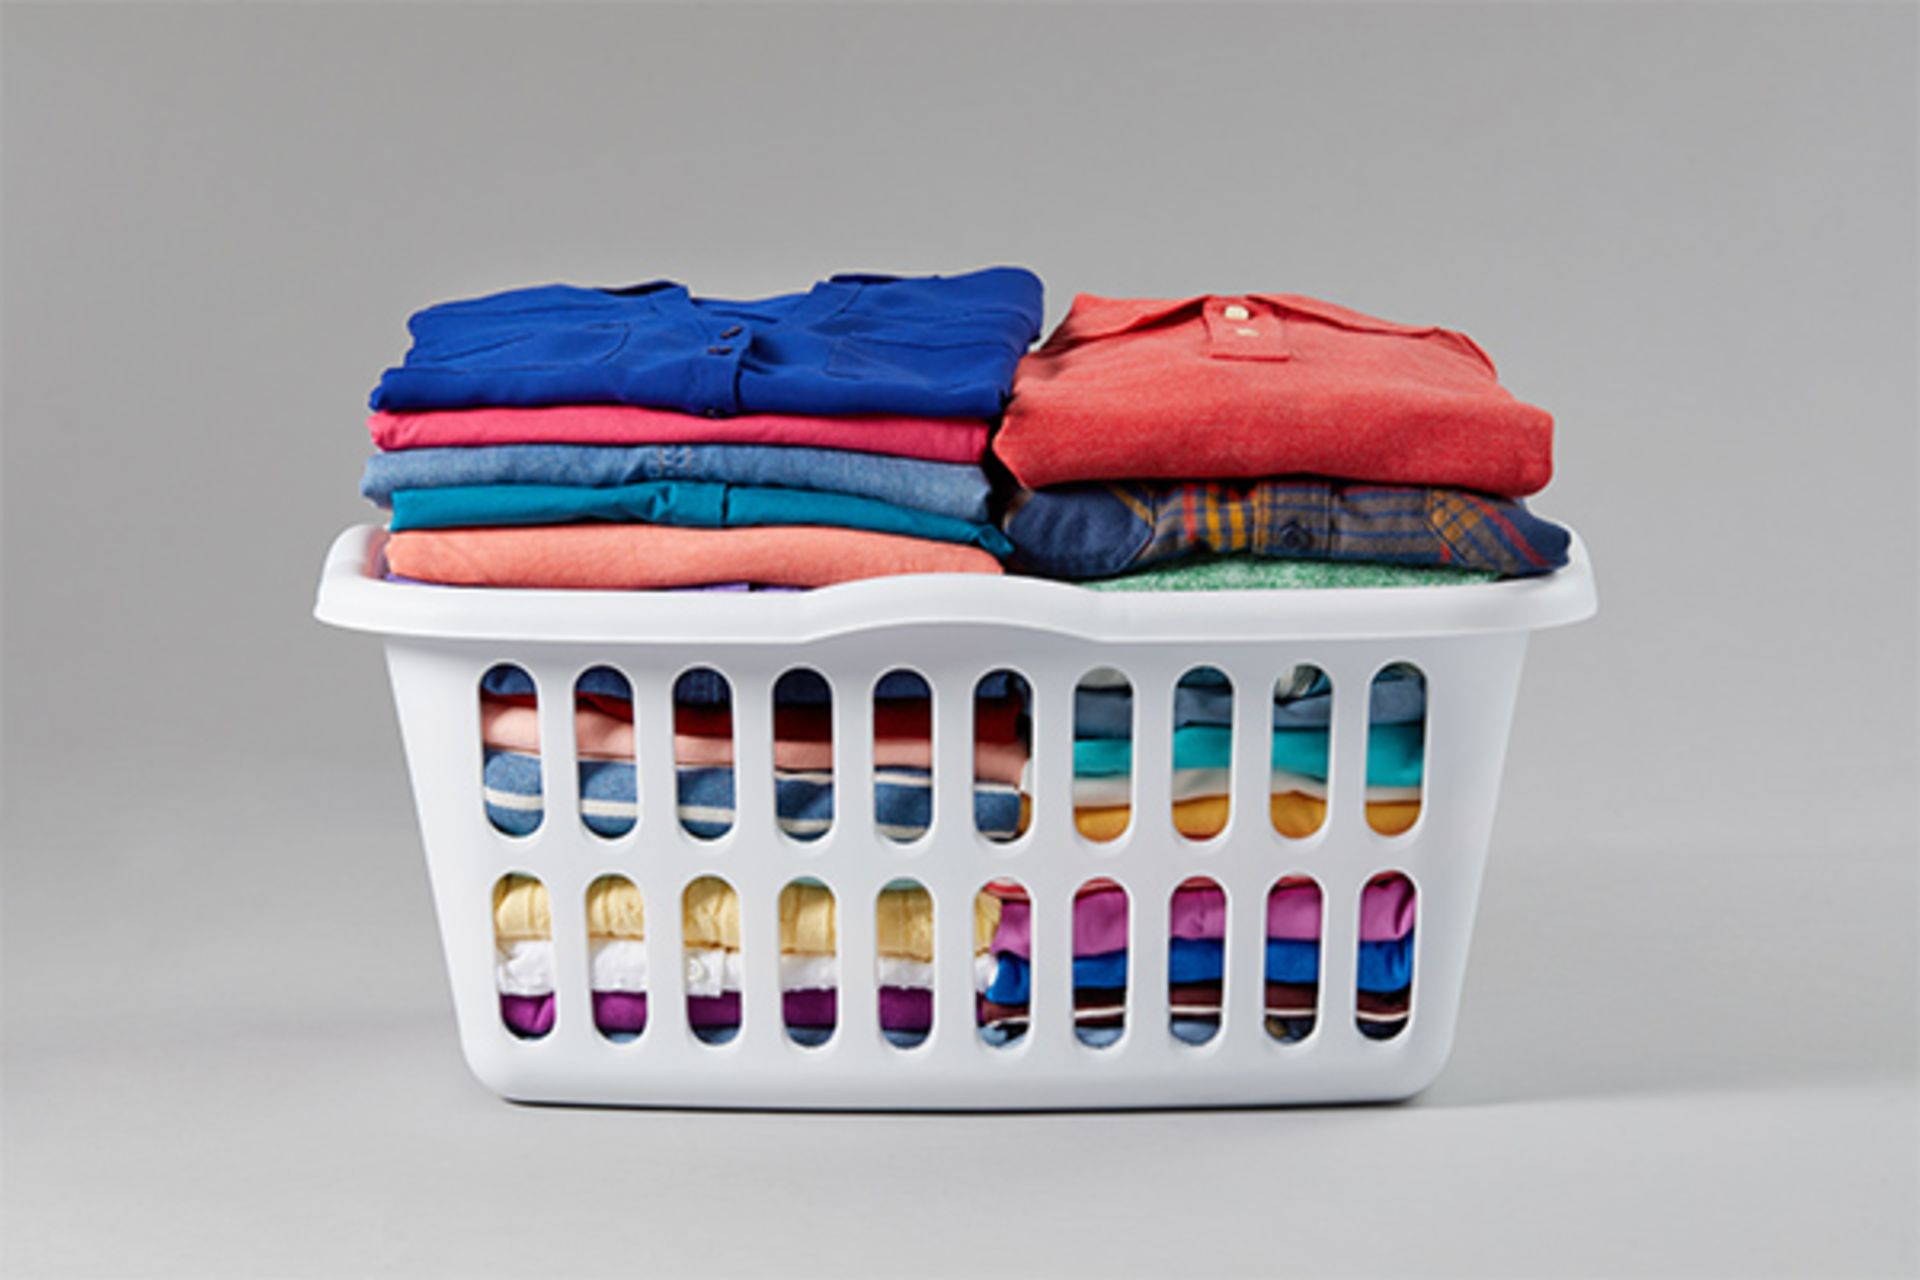 A laundry basket full of neatly folded, colored gaments